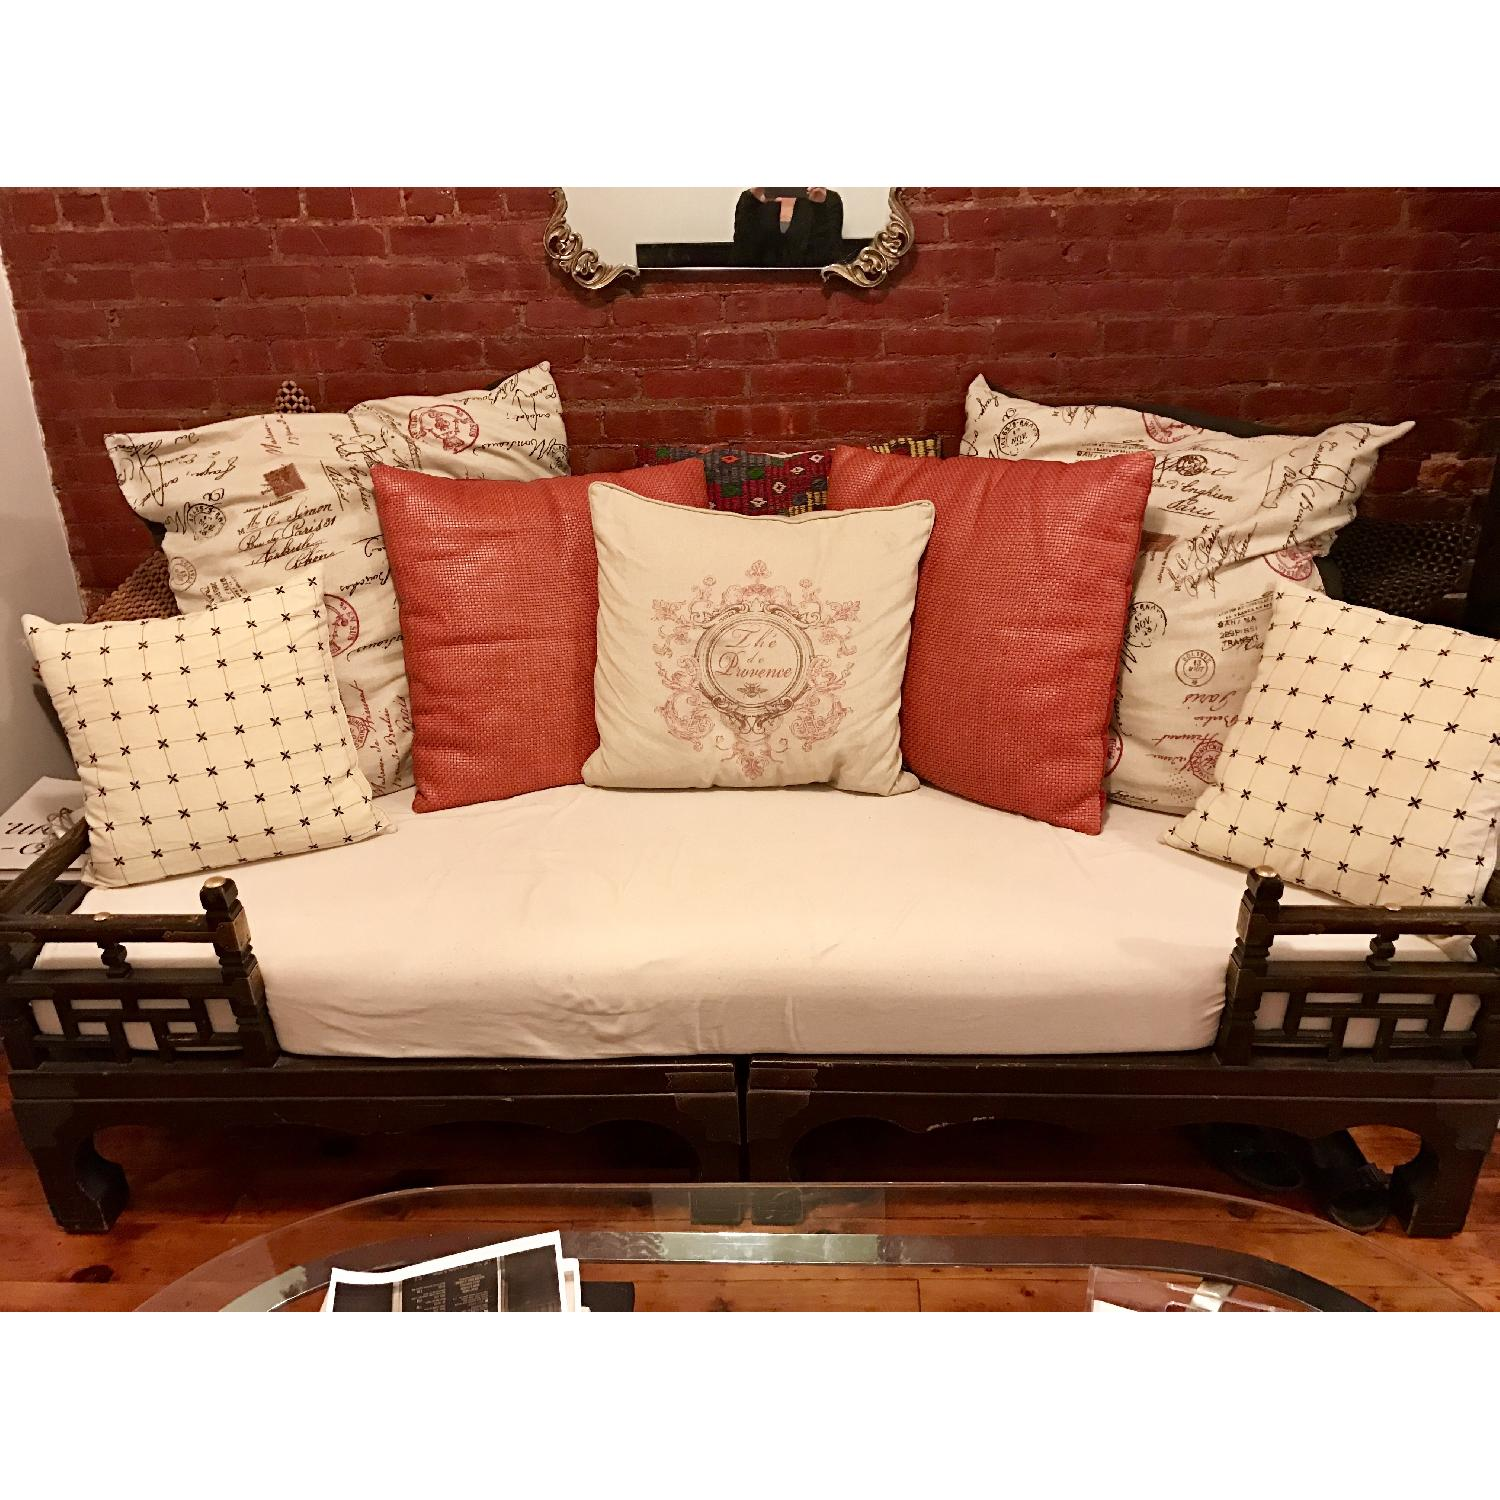 2 Piece Indonesian Daybed w/ Pillows - image-1